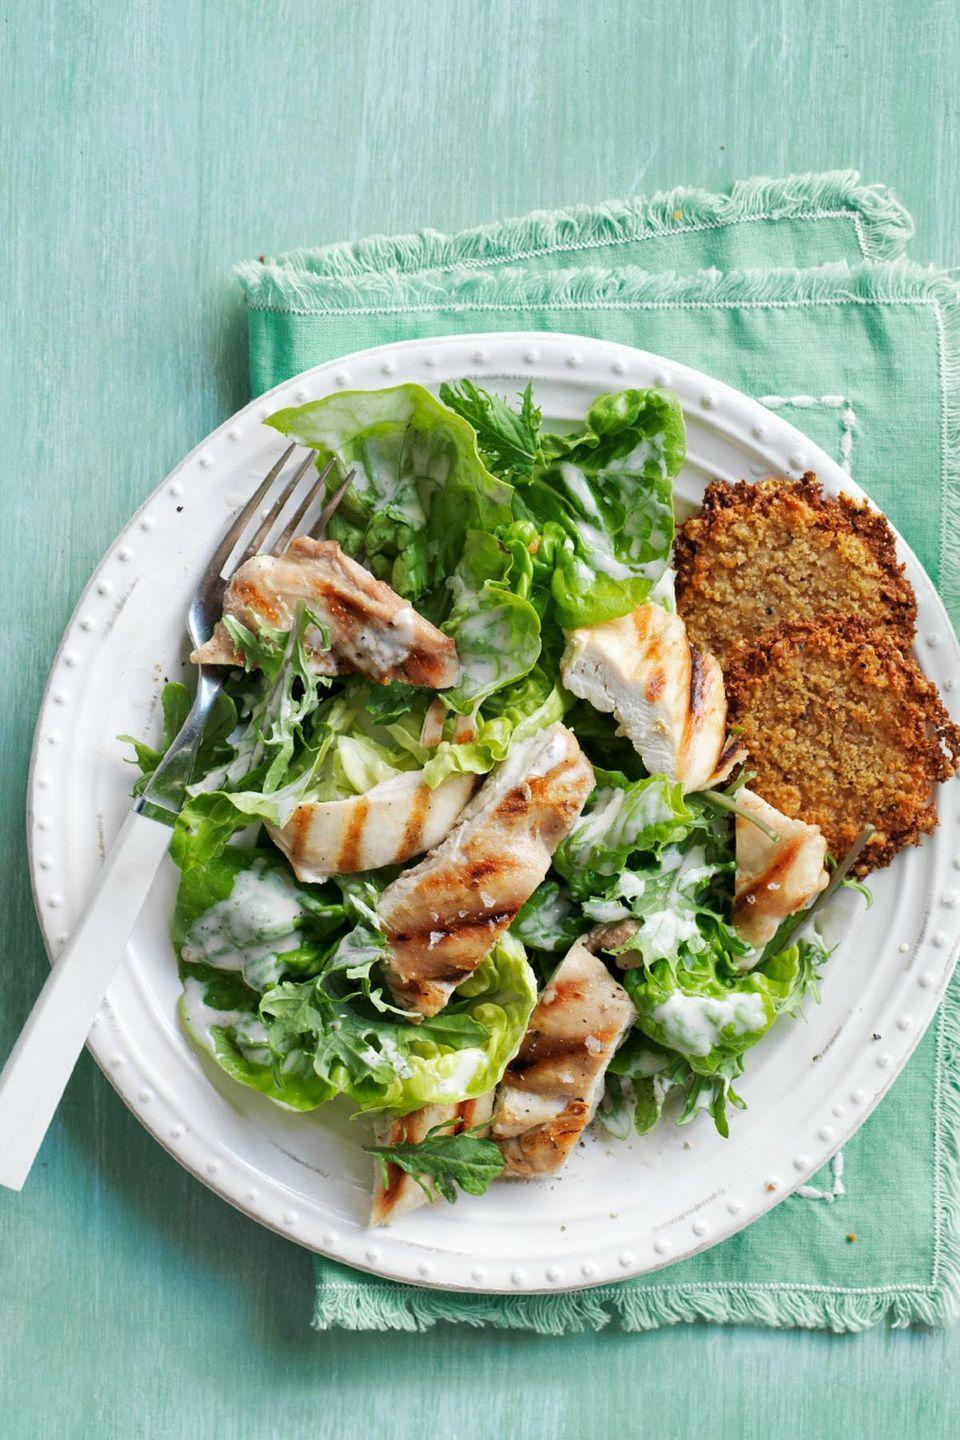 "<p>Don't underestimate this Caesar salad. Kale contains folate which may boost memory, while Greek yogurt provides a significant source of protein, which curbs appetite and aids weight loss.</p><p><a href=""https://www.womansday.com/food-recipes/recipes/a50554/kale-romaine-chicken-caesar-salad-recipe-wdy0615/"" rel=""nofollow noopener"" target=""_blank"" data-ylk=""slk:Get the recipe for Kale and Romaine Chicken Caesar Salad."" class=""link rapid-noclick-resp""><em>Get the recipe for Kale and Romaine Chicken Caesar Salad.</em></a> </p>"